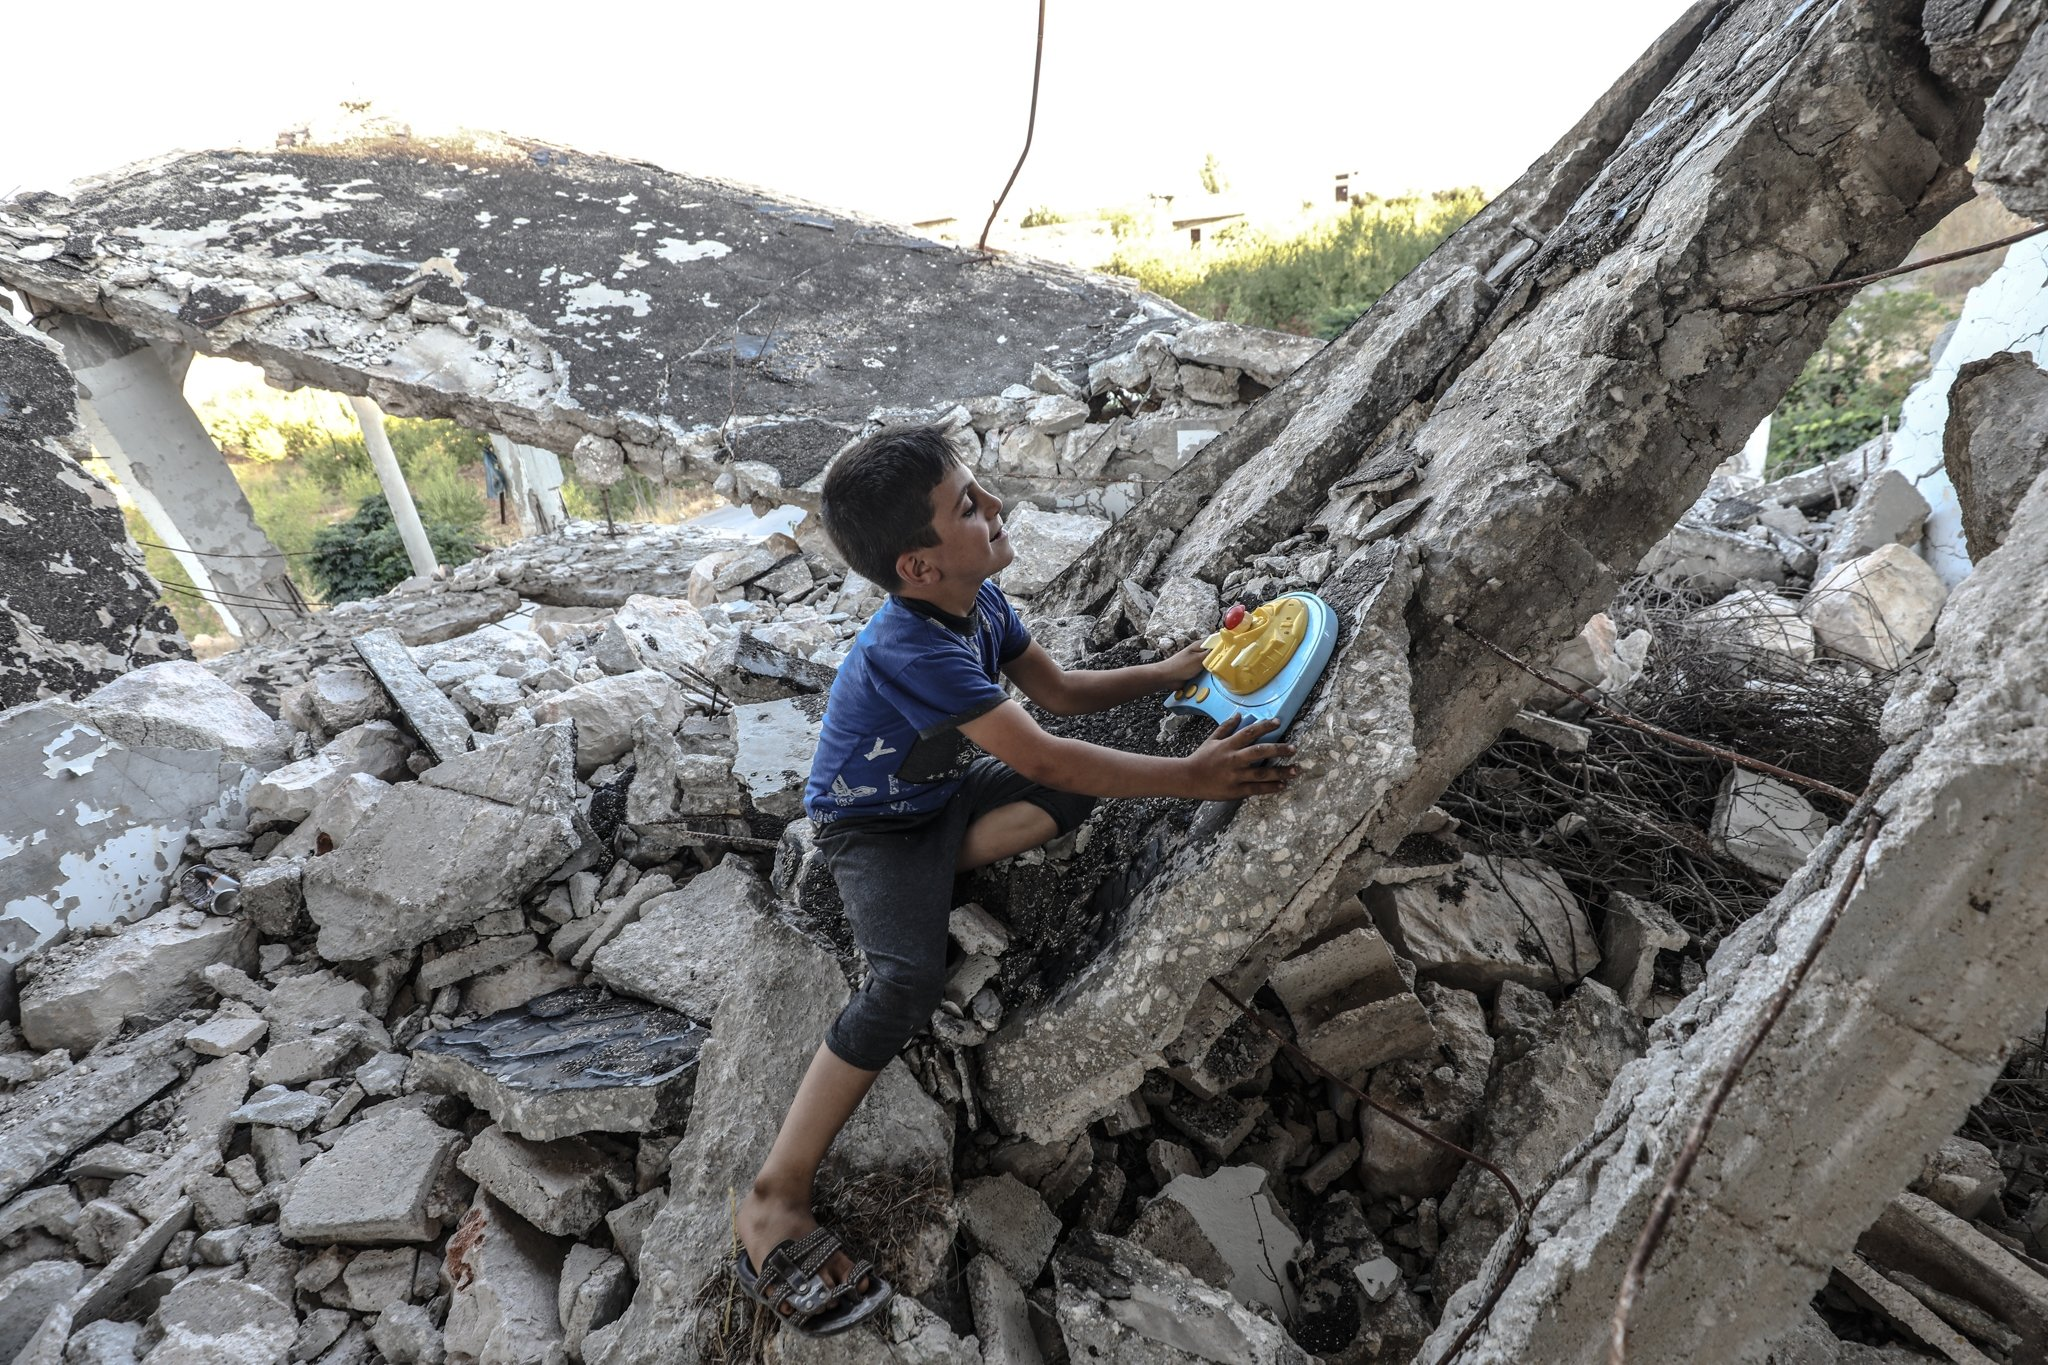 7-years-old Mohamad plays in his wrecked home damaged by Syrian regime attacks, Aug. 25, 2020. (AA)